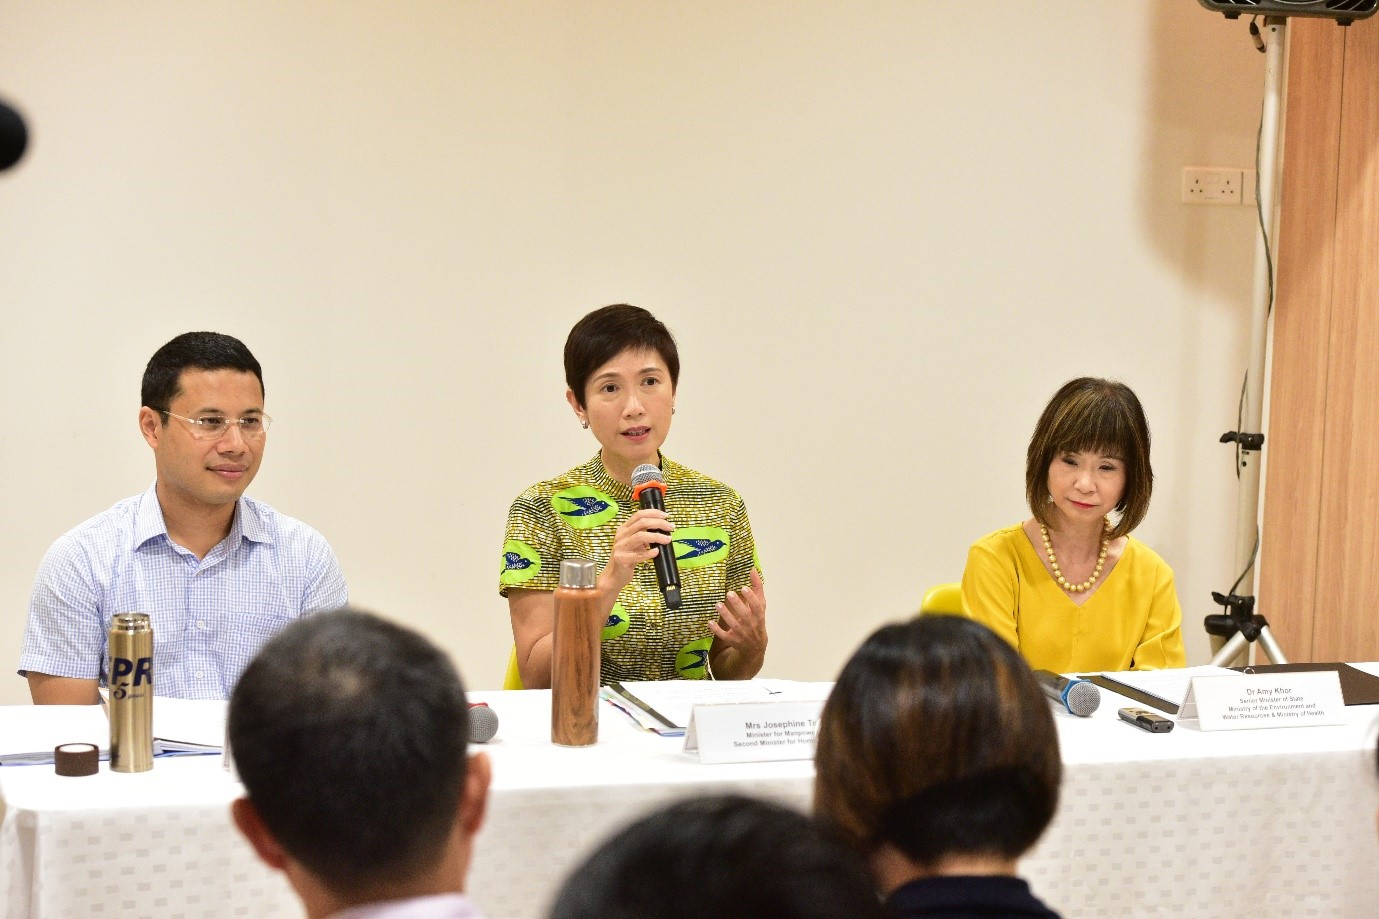 (From left) Minister Desmond Lee, Minister Josephine Teo and SMS Dr Amy Khor addressing the media during the Joint-Ministerial media conference on Marriage and Parenthood at My First Skool.